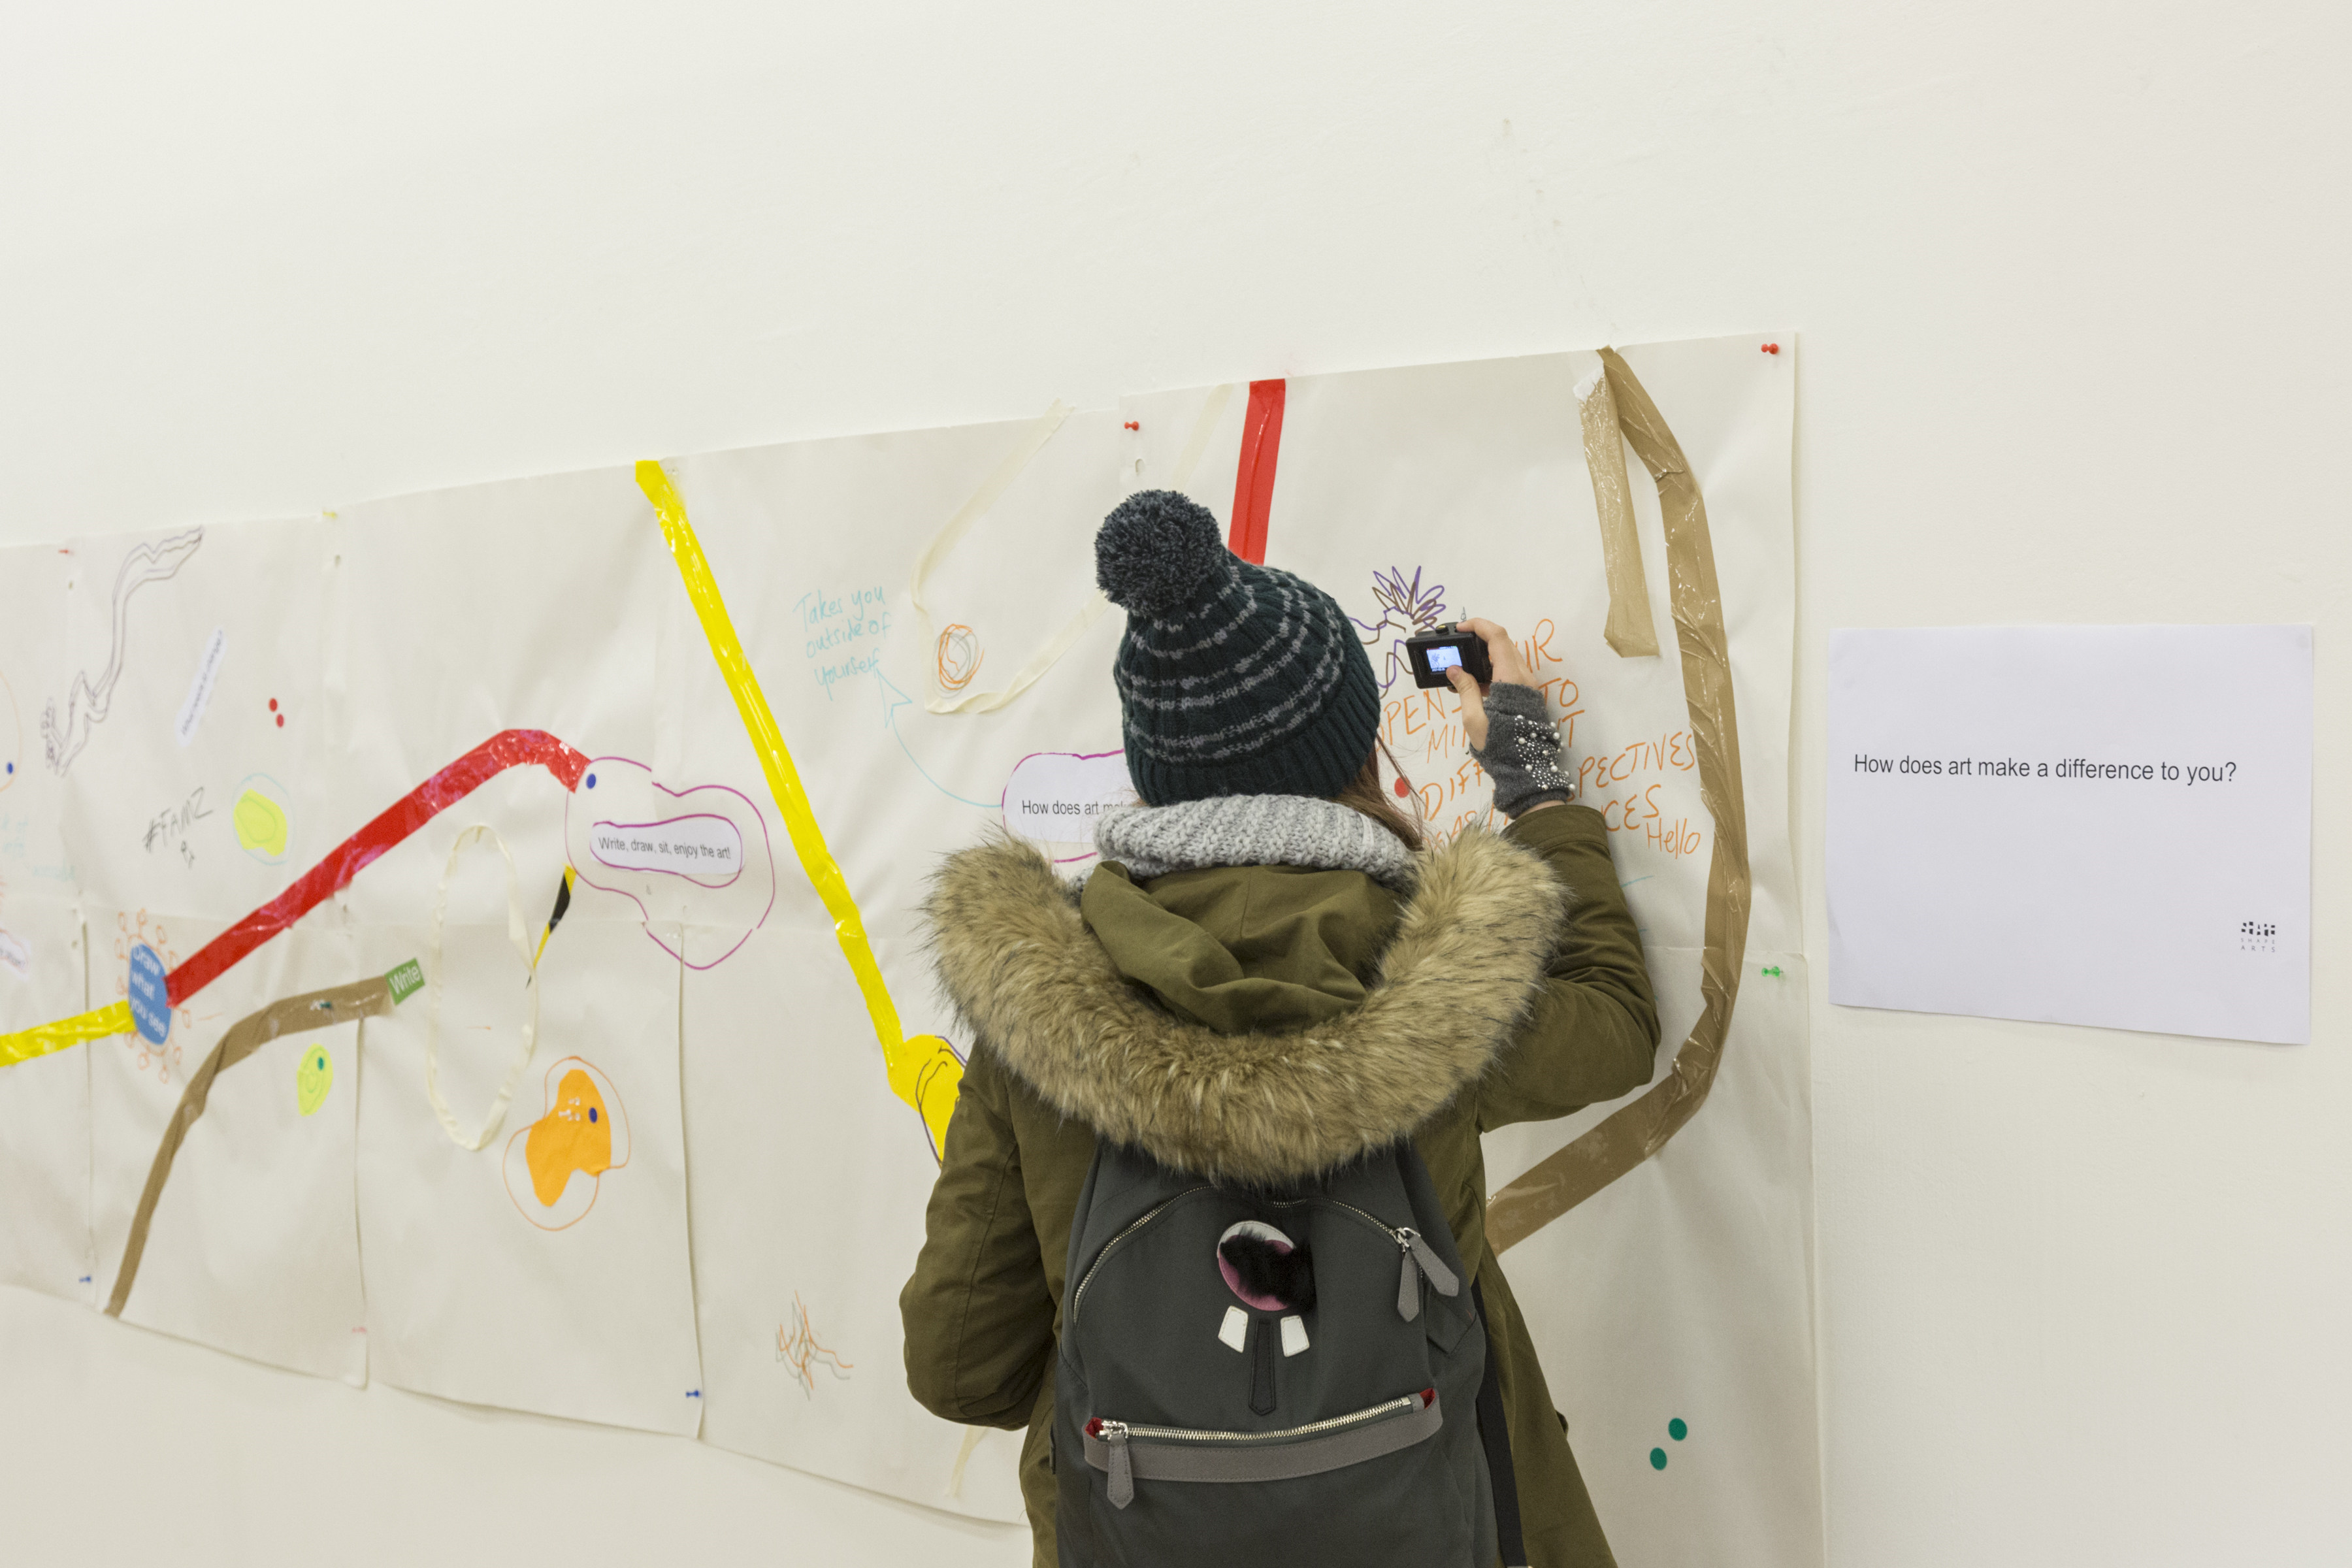 a young woman with her back to us scrawls on a wall of other messages and drawings made by the public at tate exchange